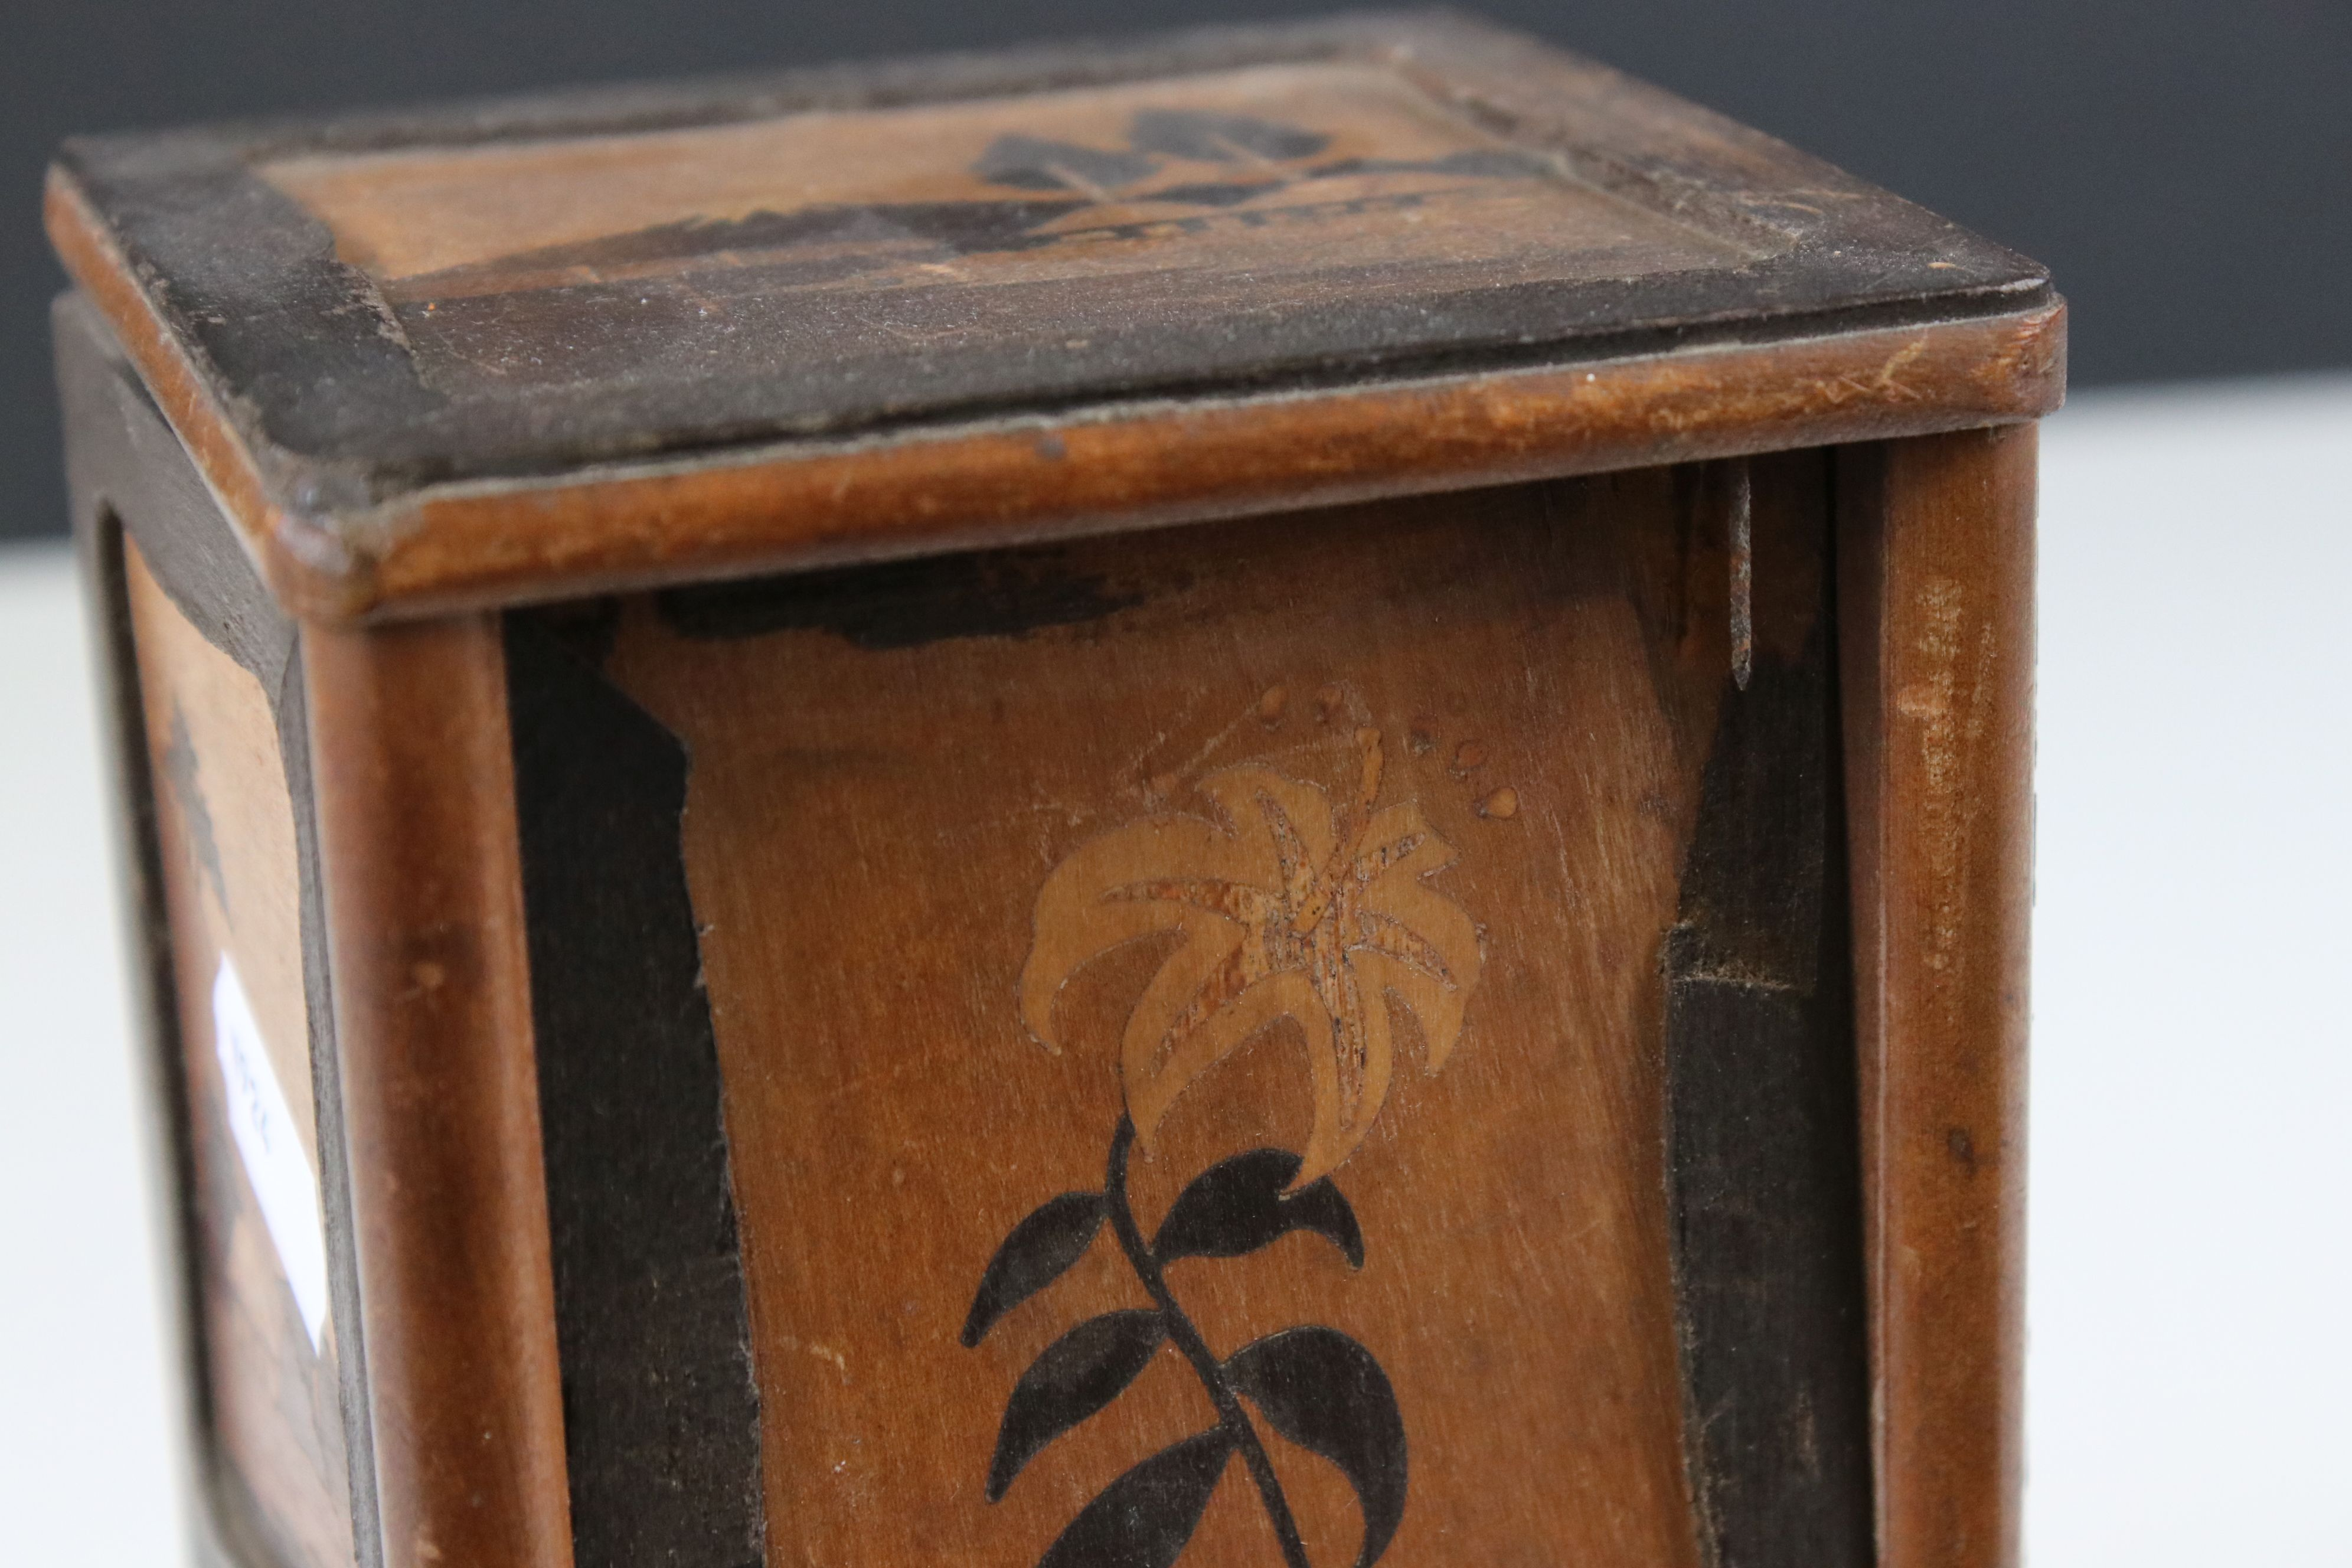 Japanese Wooden Inlaid Table Cigarette Dispenser, decorated with scenes of Mount Fuji, Flowers and - Image 4 of 5